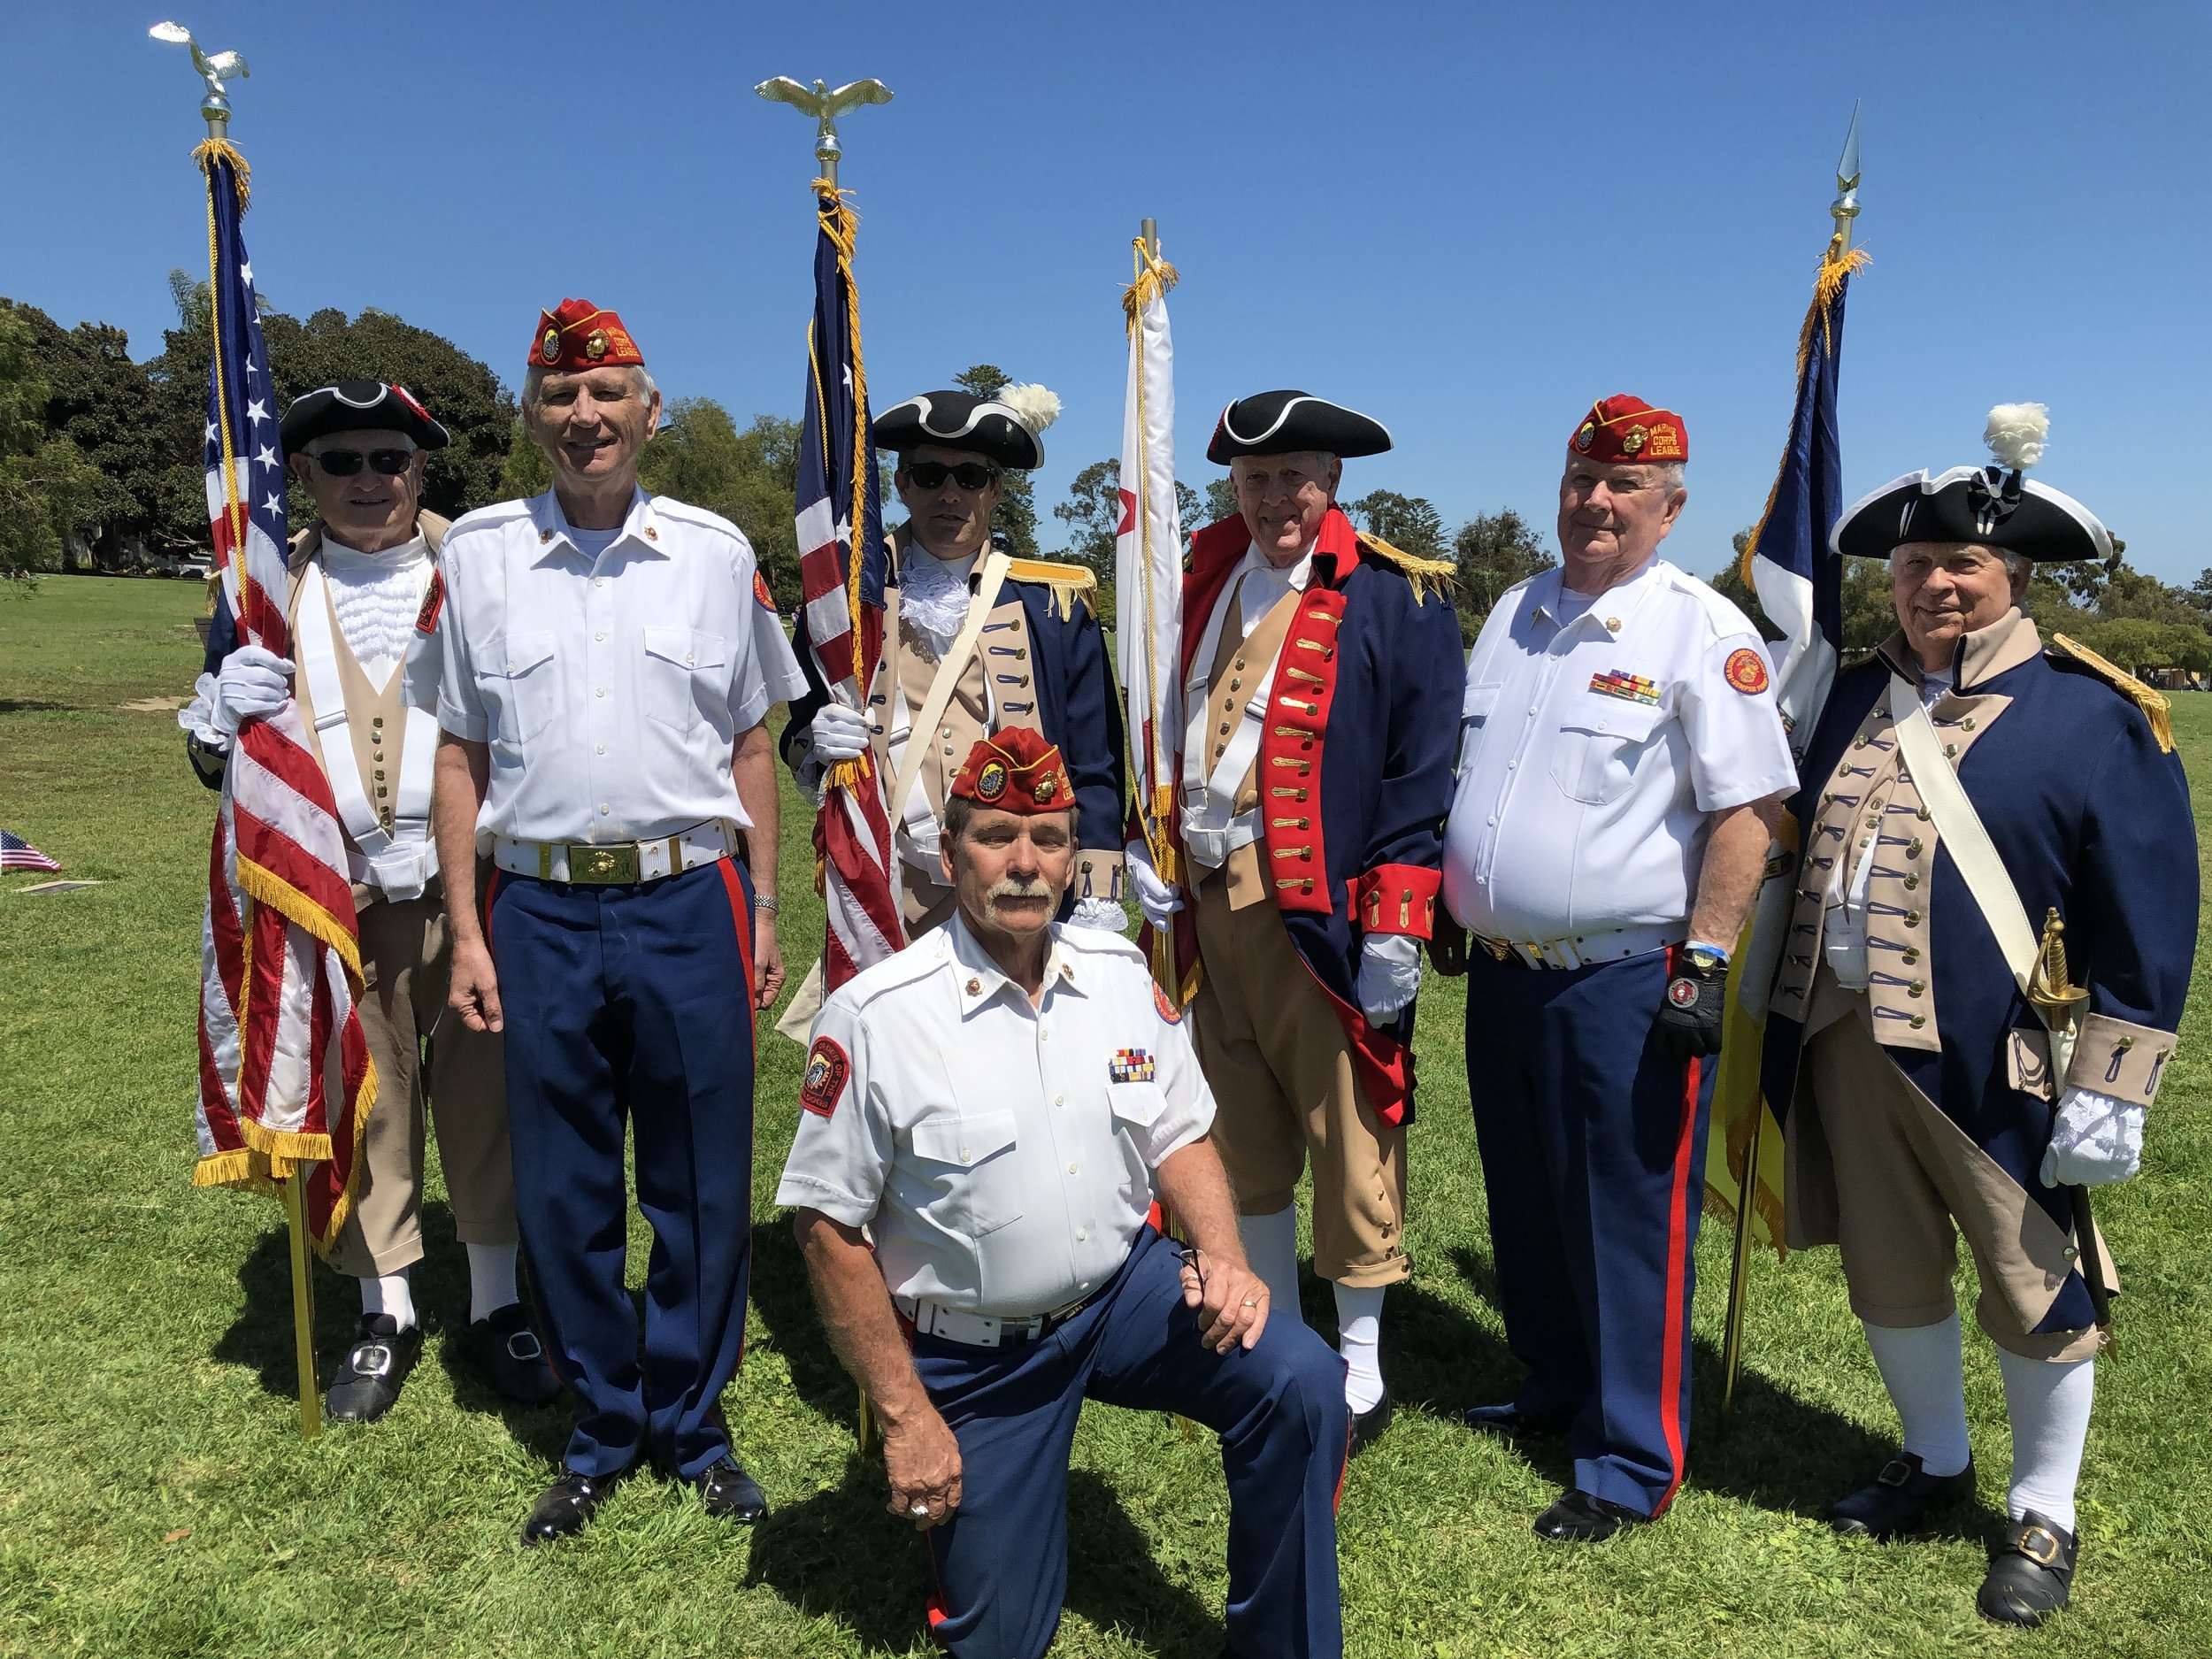 May 27, 2019   Detachment Rifle Squad with the Revolutionary Guard at St. Mary's Cemetery at their Memorial Day Remembrance.  Detachment Members L/R:  John Miller, Larry Fischer (kneeling), and Dick Jennings.  Not pictured is Bob Martinez, our Detachment Bugler.